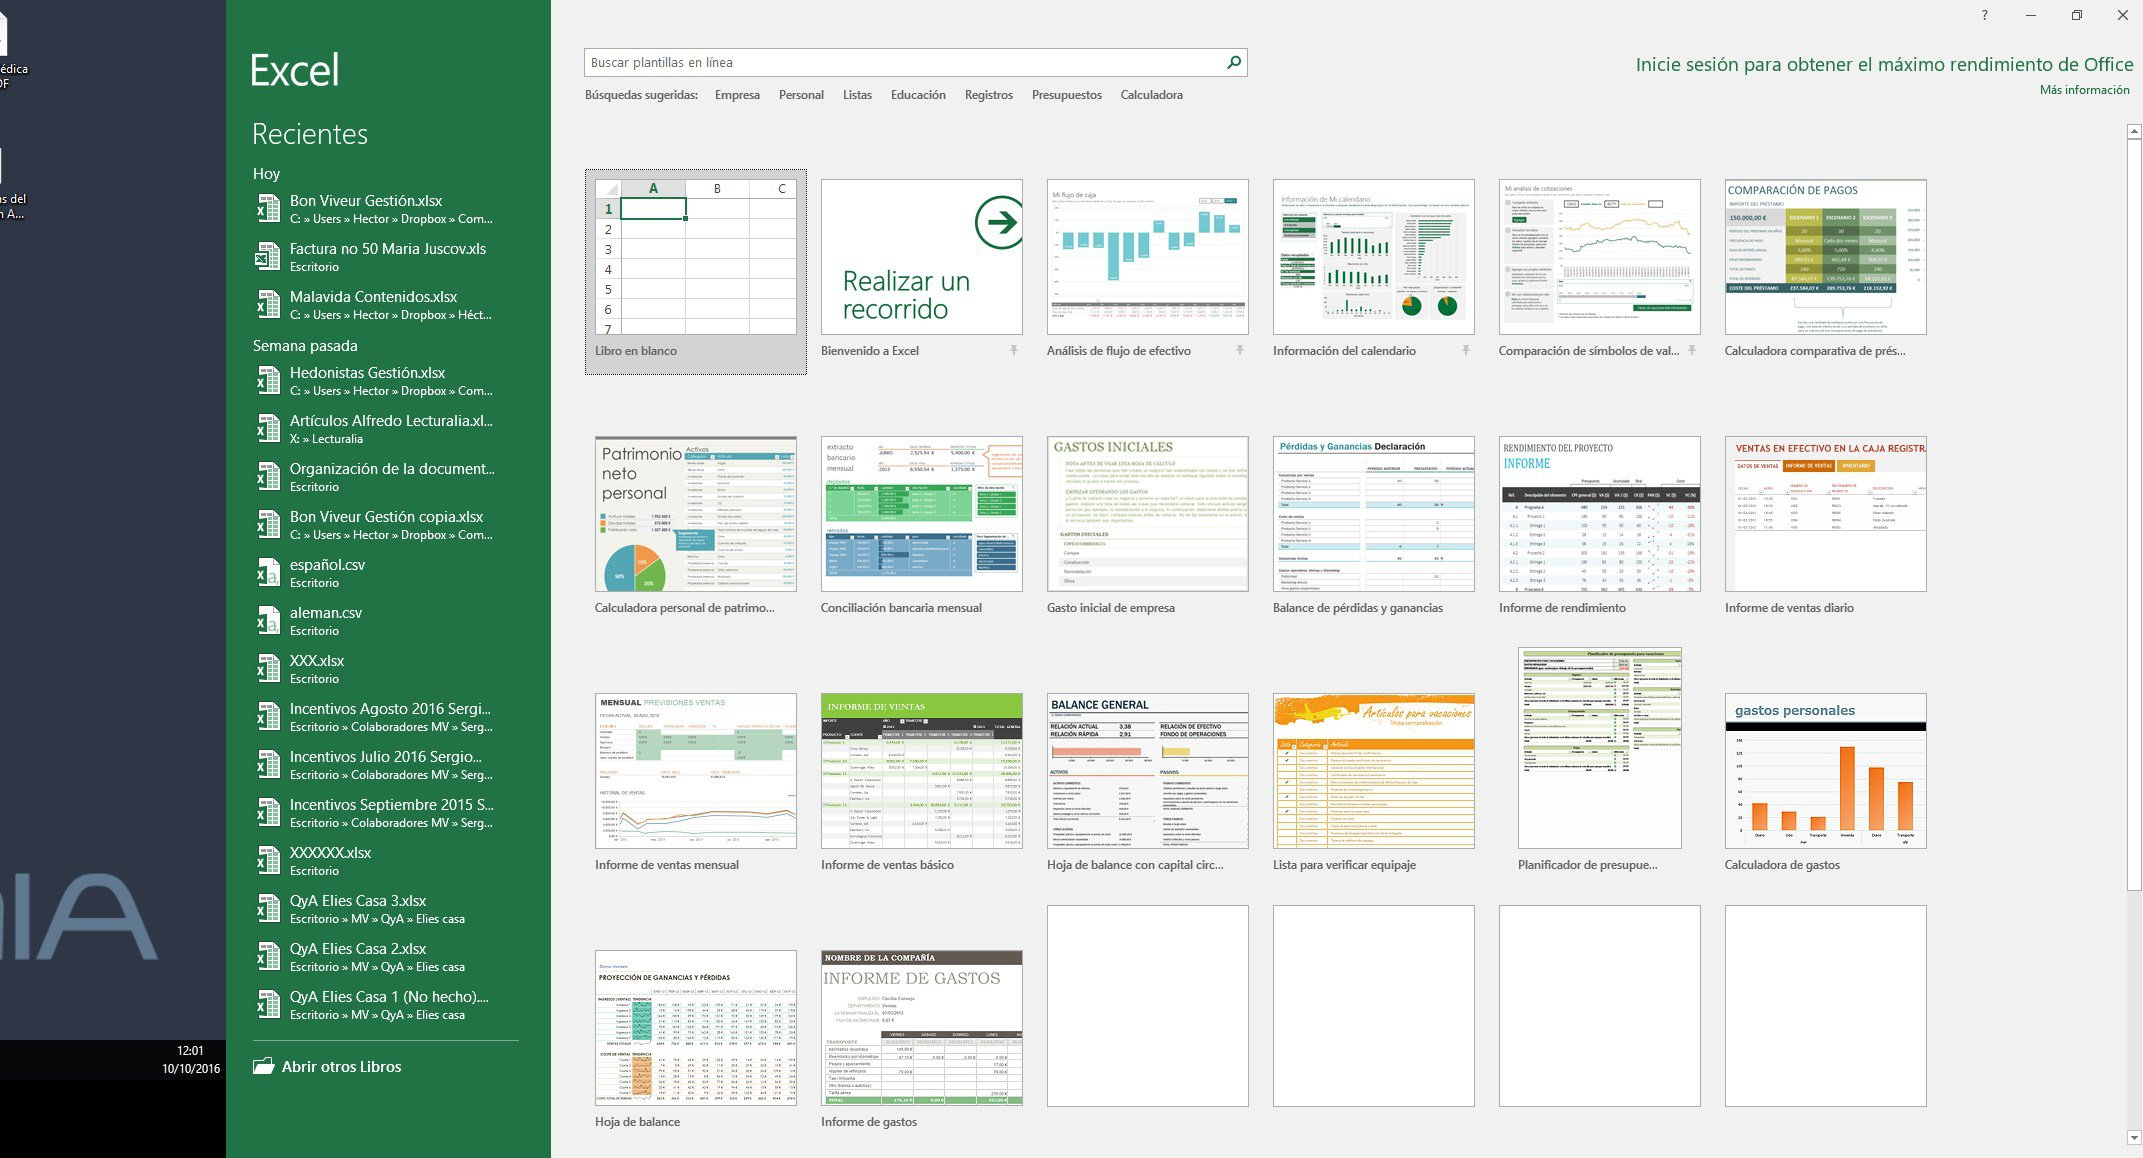 Download Microsoft Excel 2016 16.0.9226.2114 For Pc   Free And Free Spreadsheets For Windows